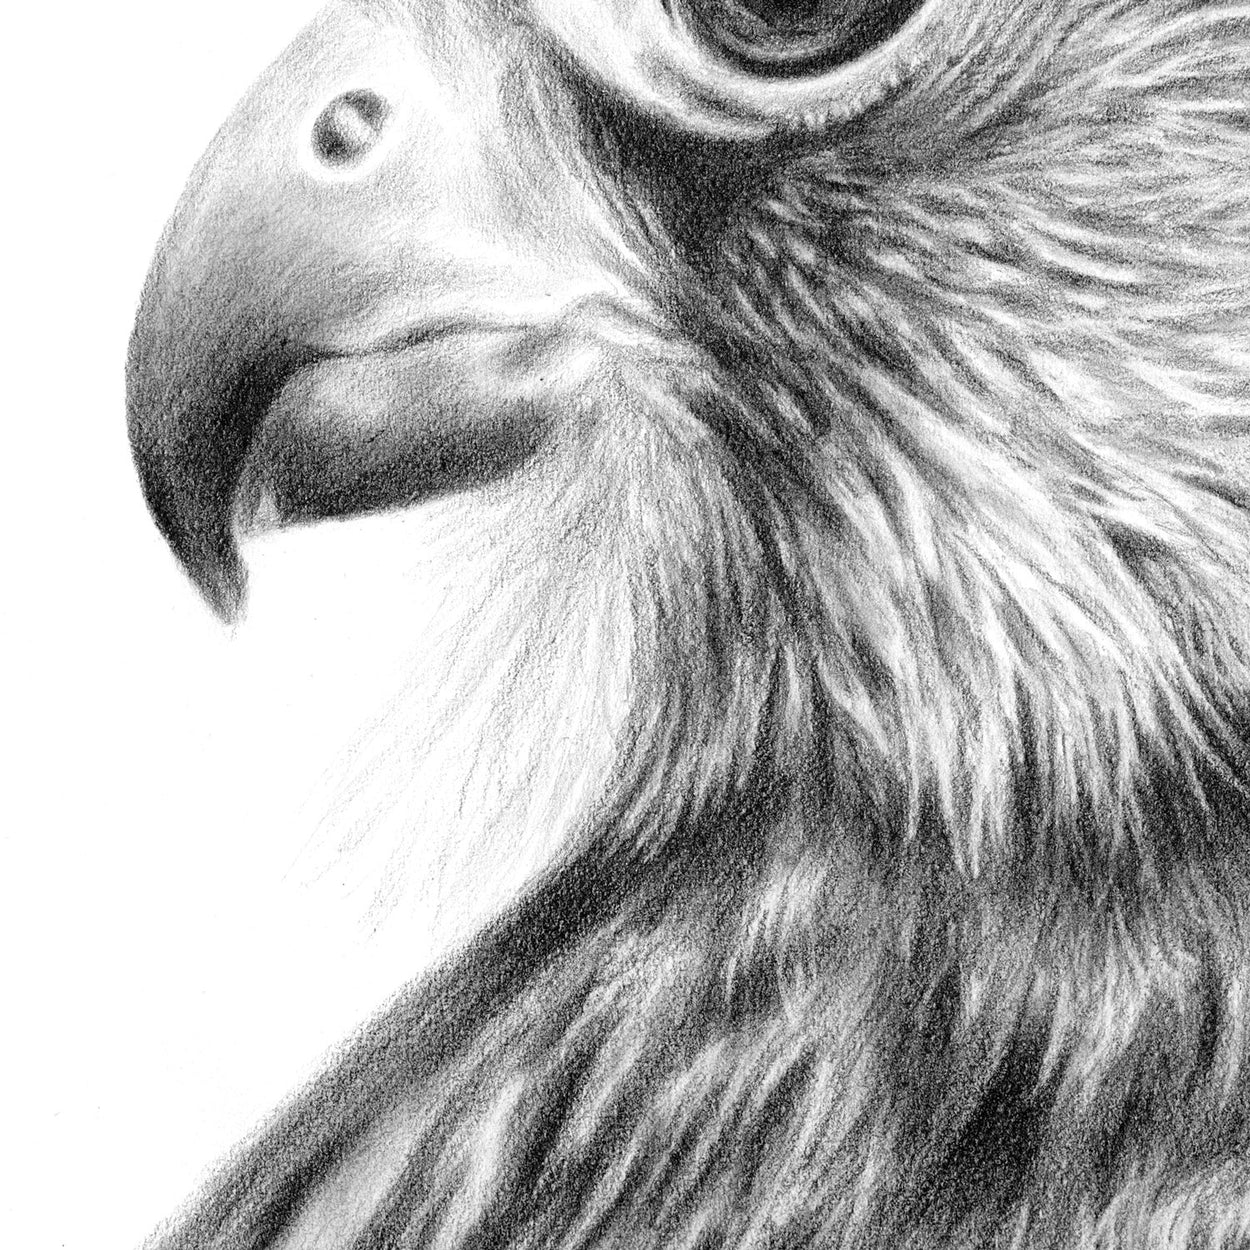 Kestrel Drawing Close-up 2 - The Thriving Wild - Jill Dimond